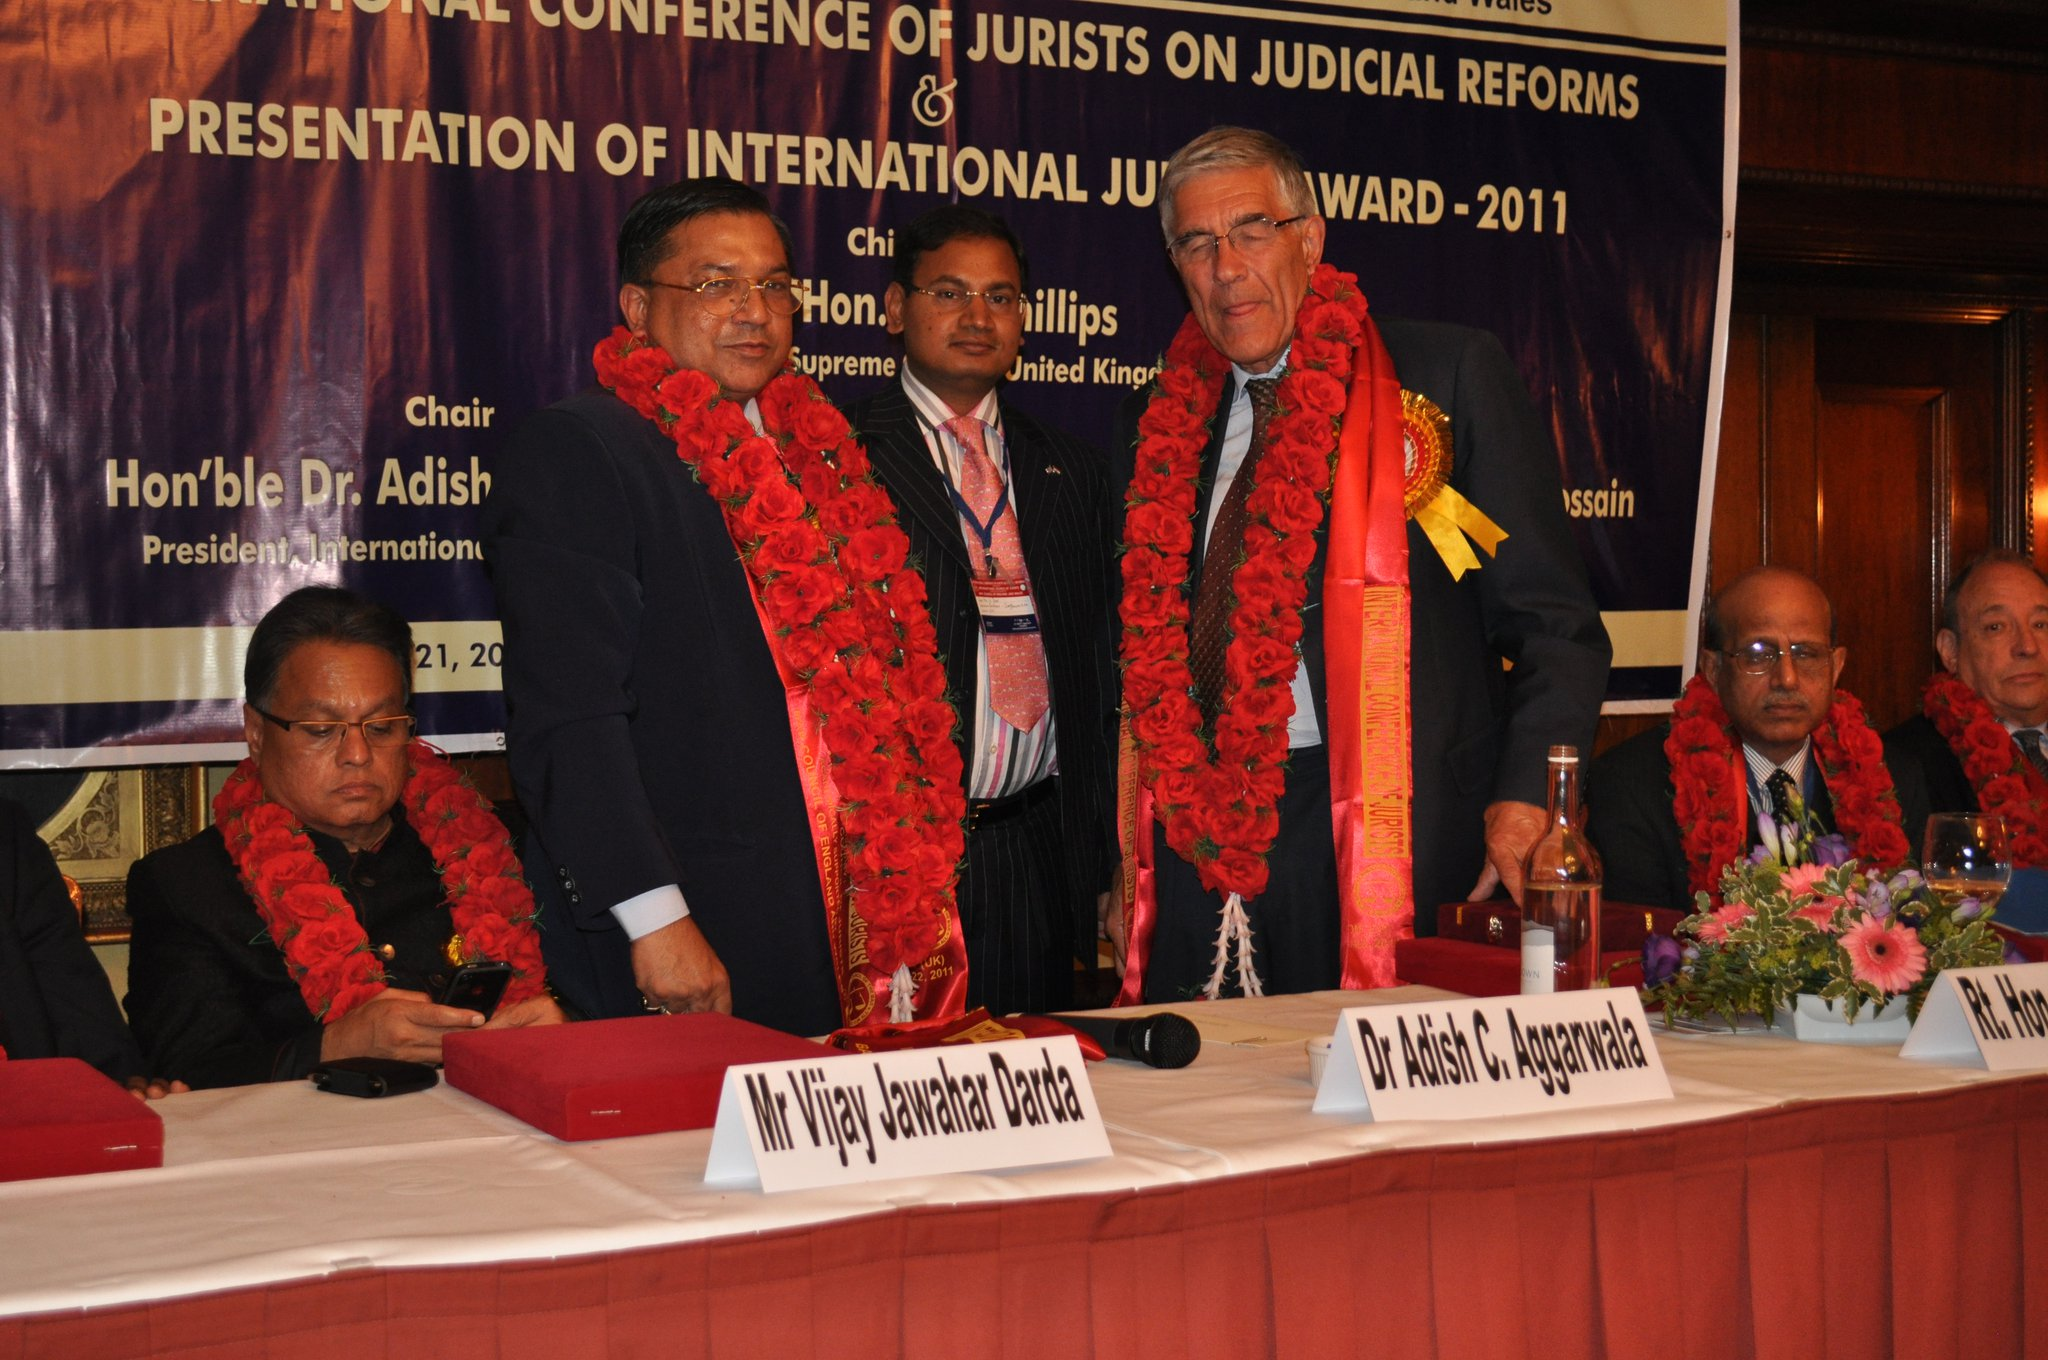 International Conference of Jurists